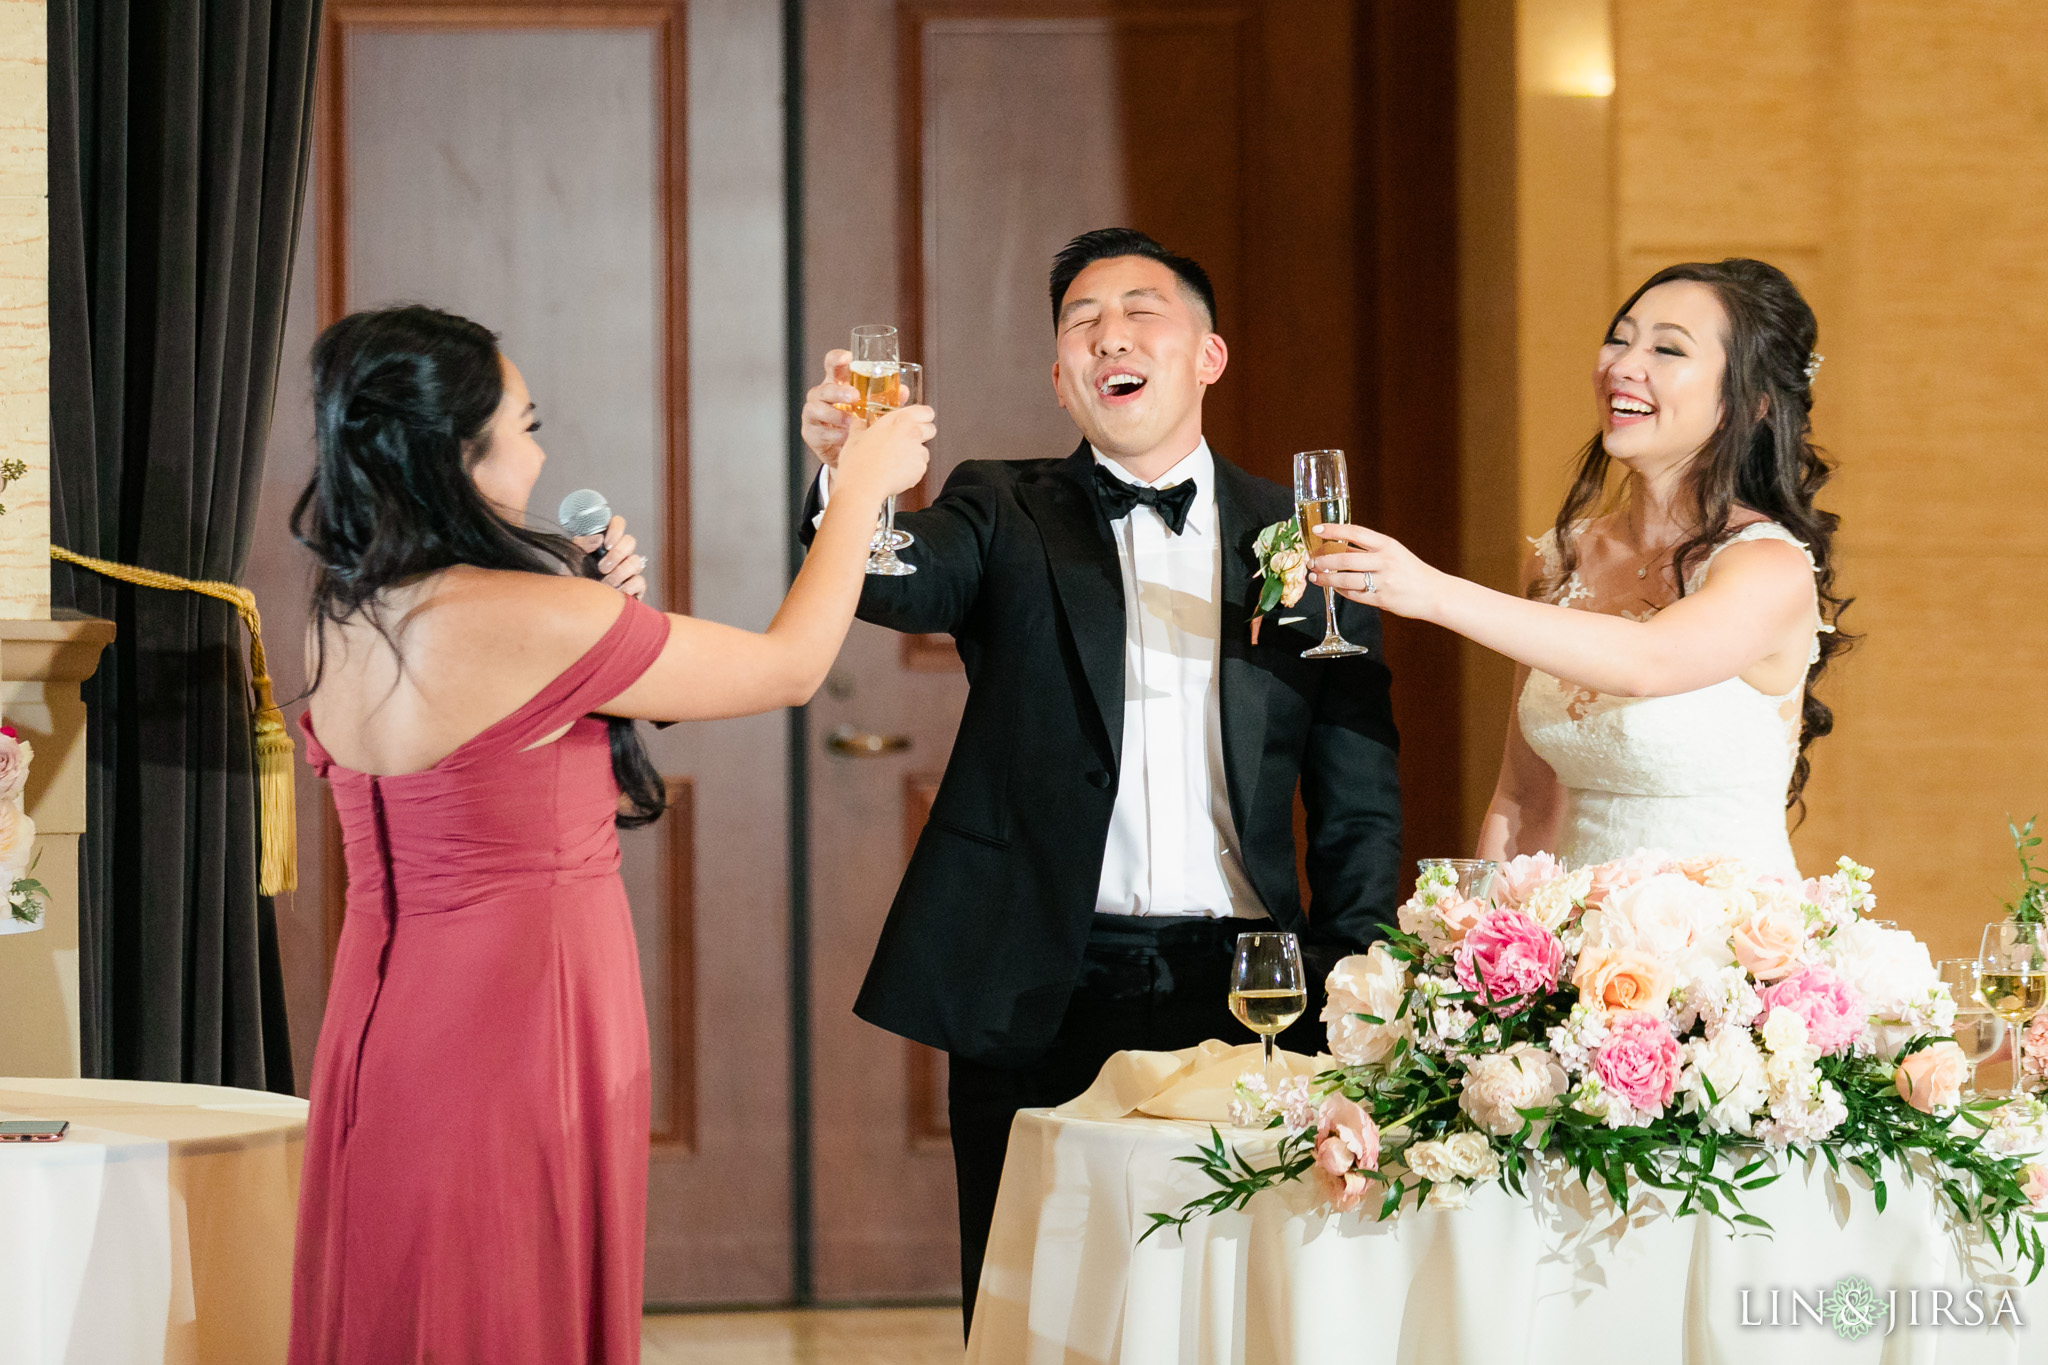 32 Bently Reserve San Francisco Destination Wedding Photographer